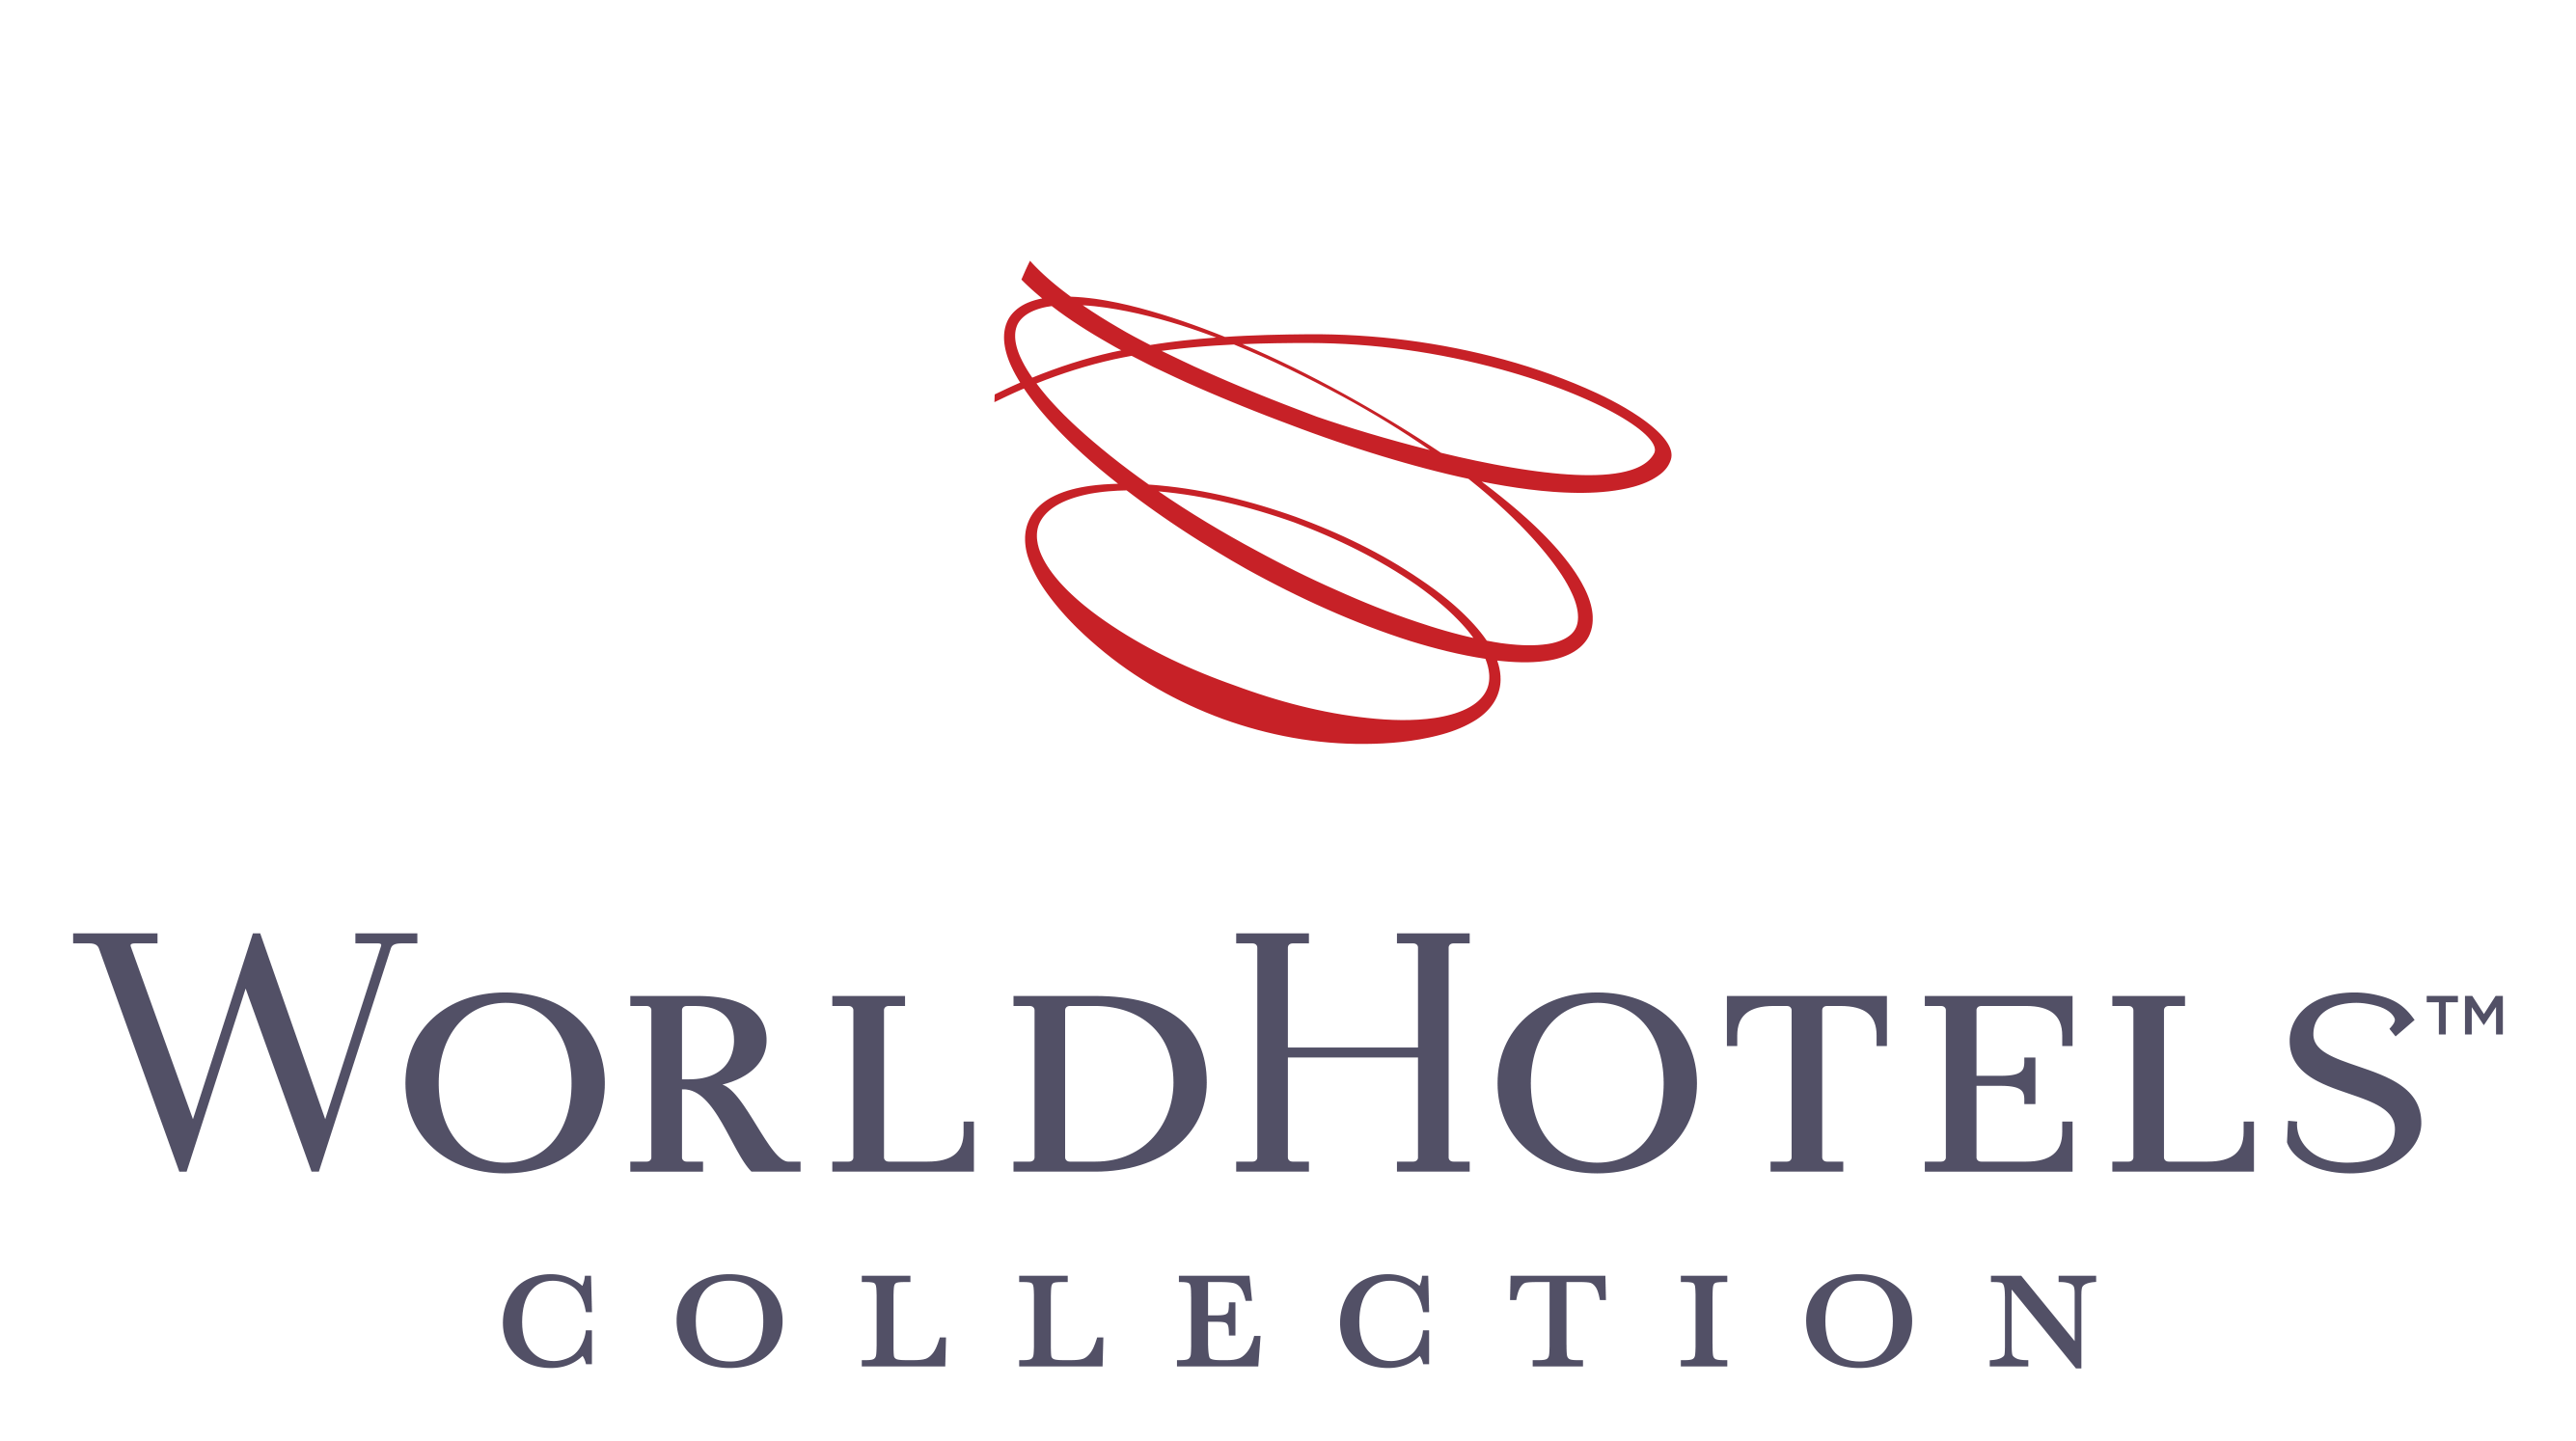 Worldhotels